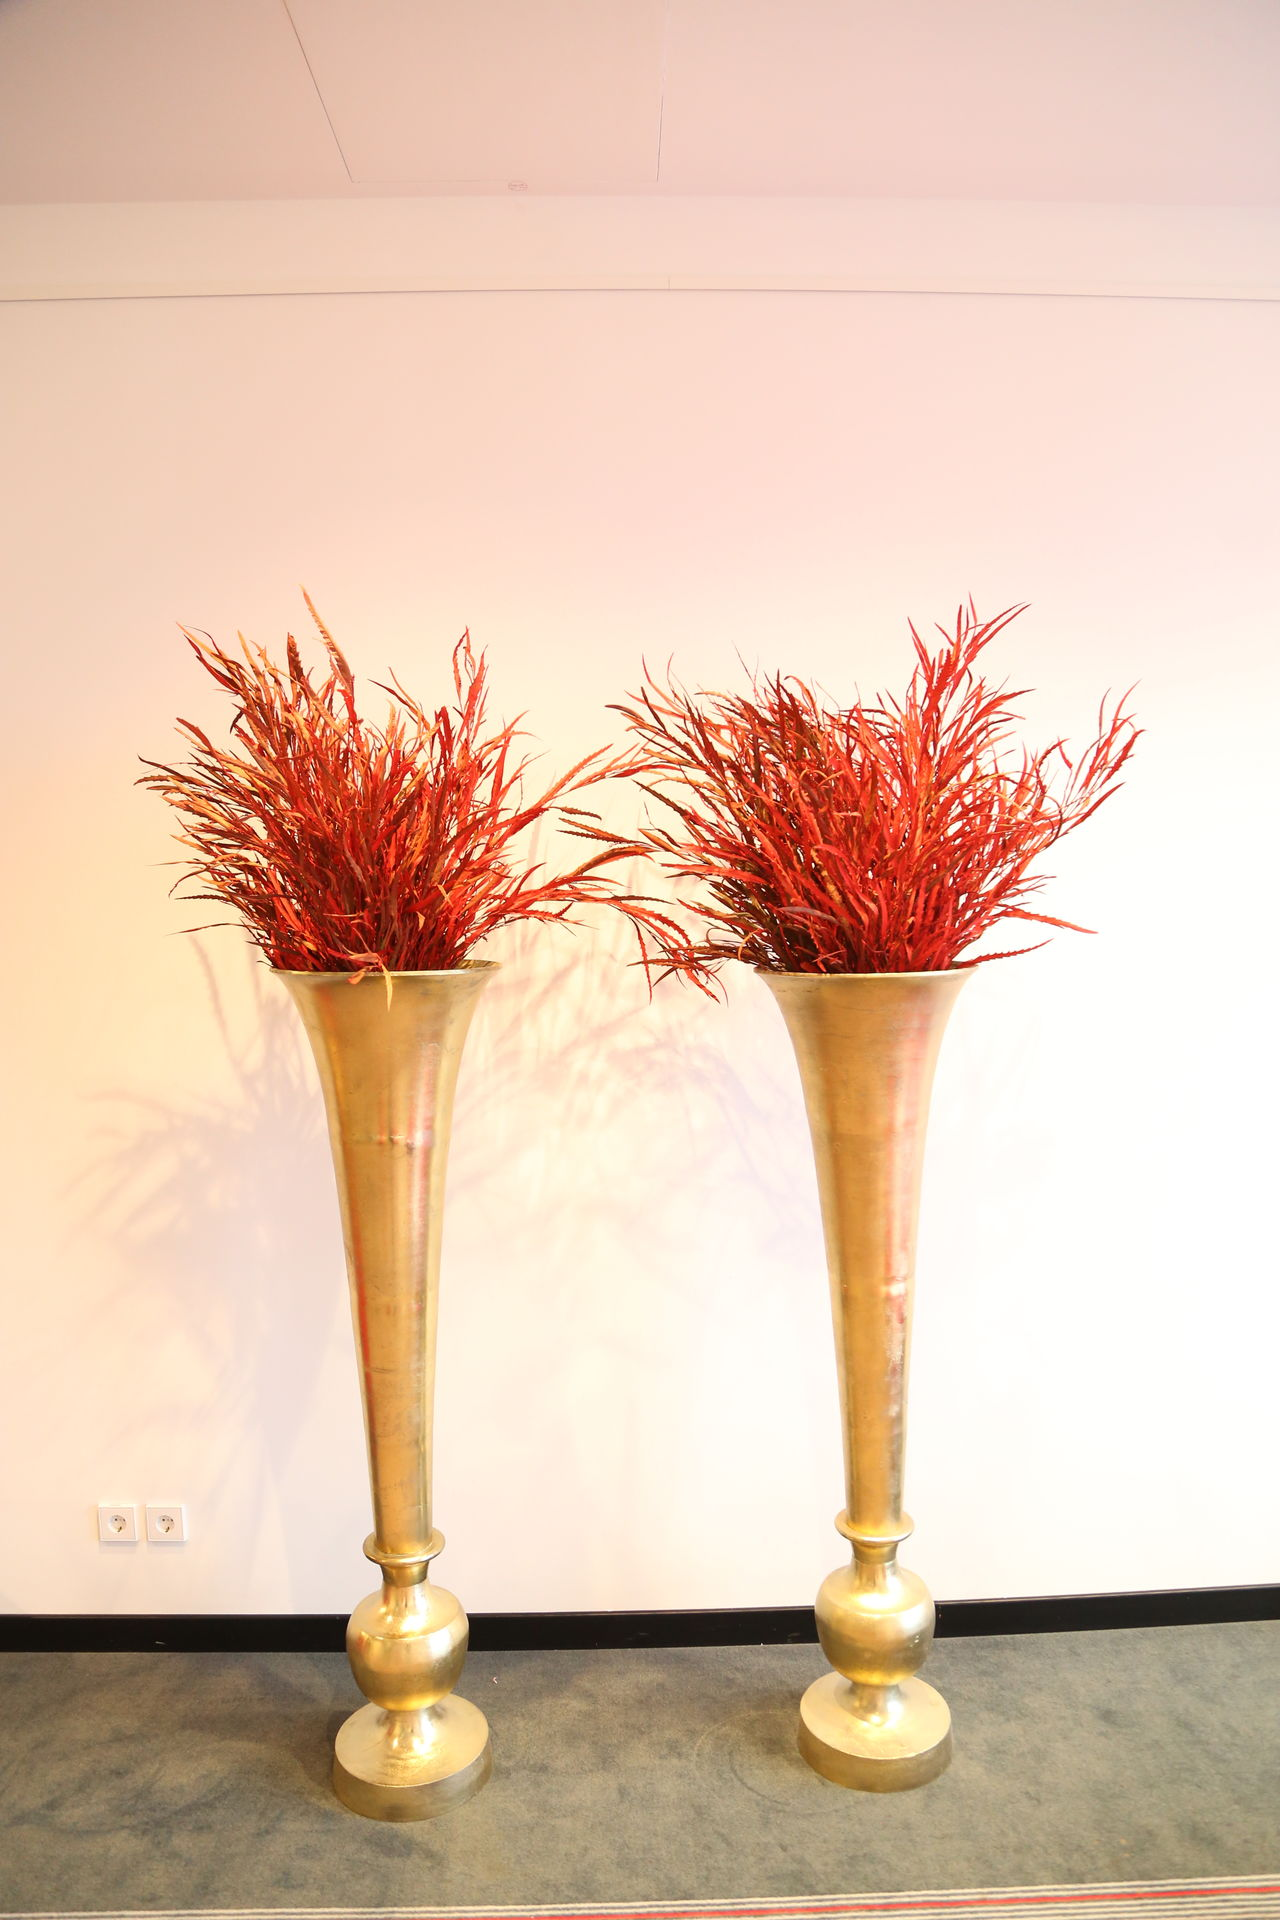 Day Decoration Golden Vases Indoors  No People Red Flowers Twins Vases